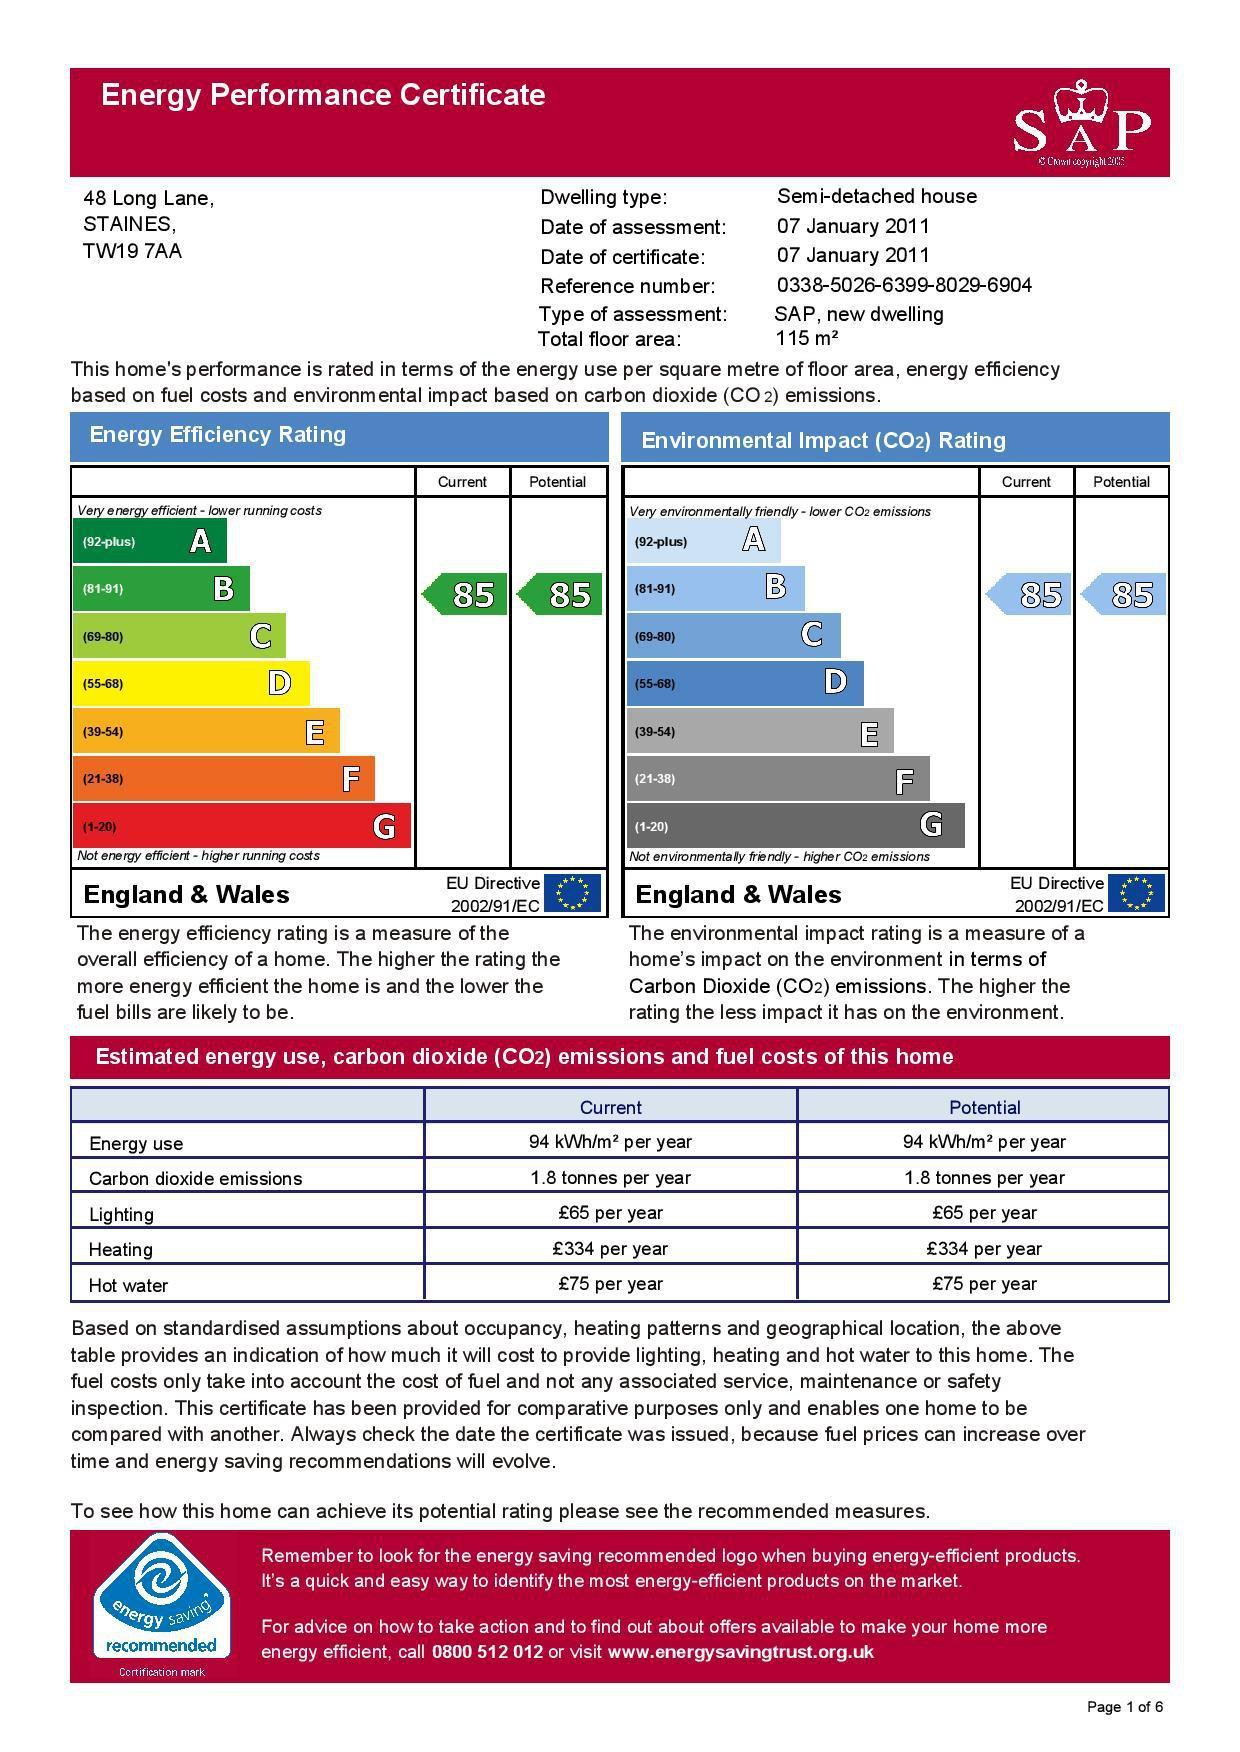 EPC Graph for 48 Long Lane, Stanwell, Middlesex TW19 7AA